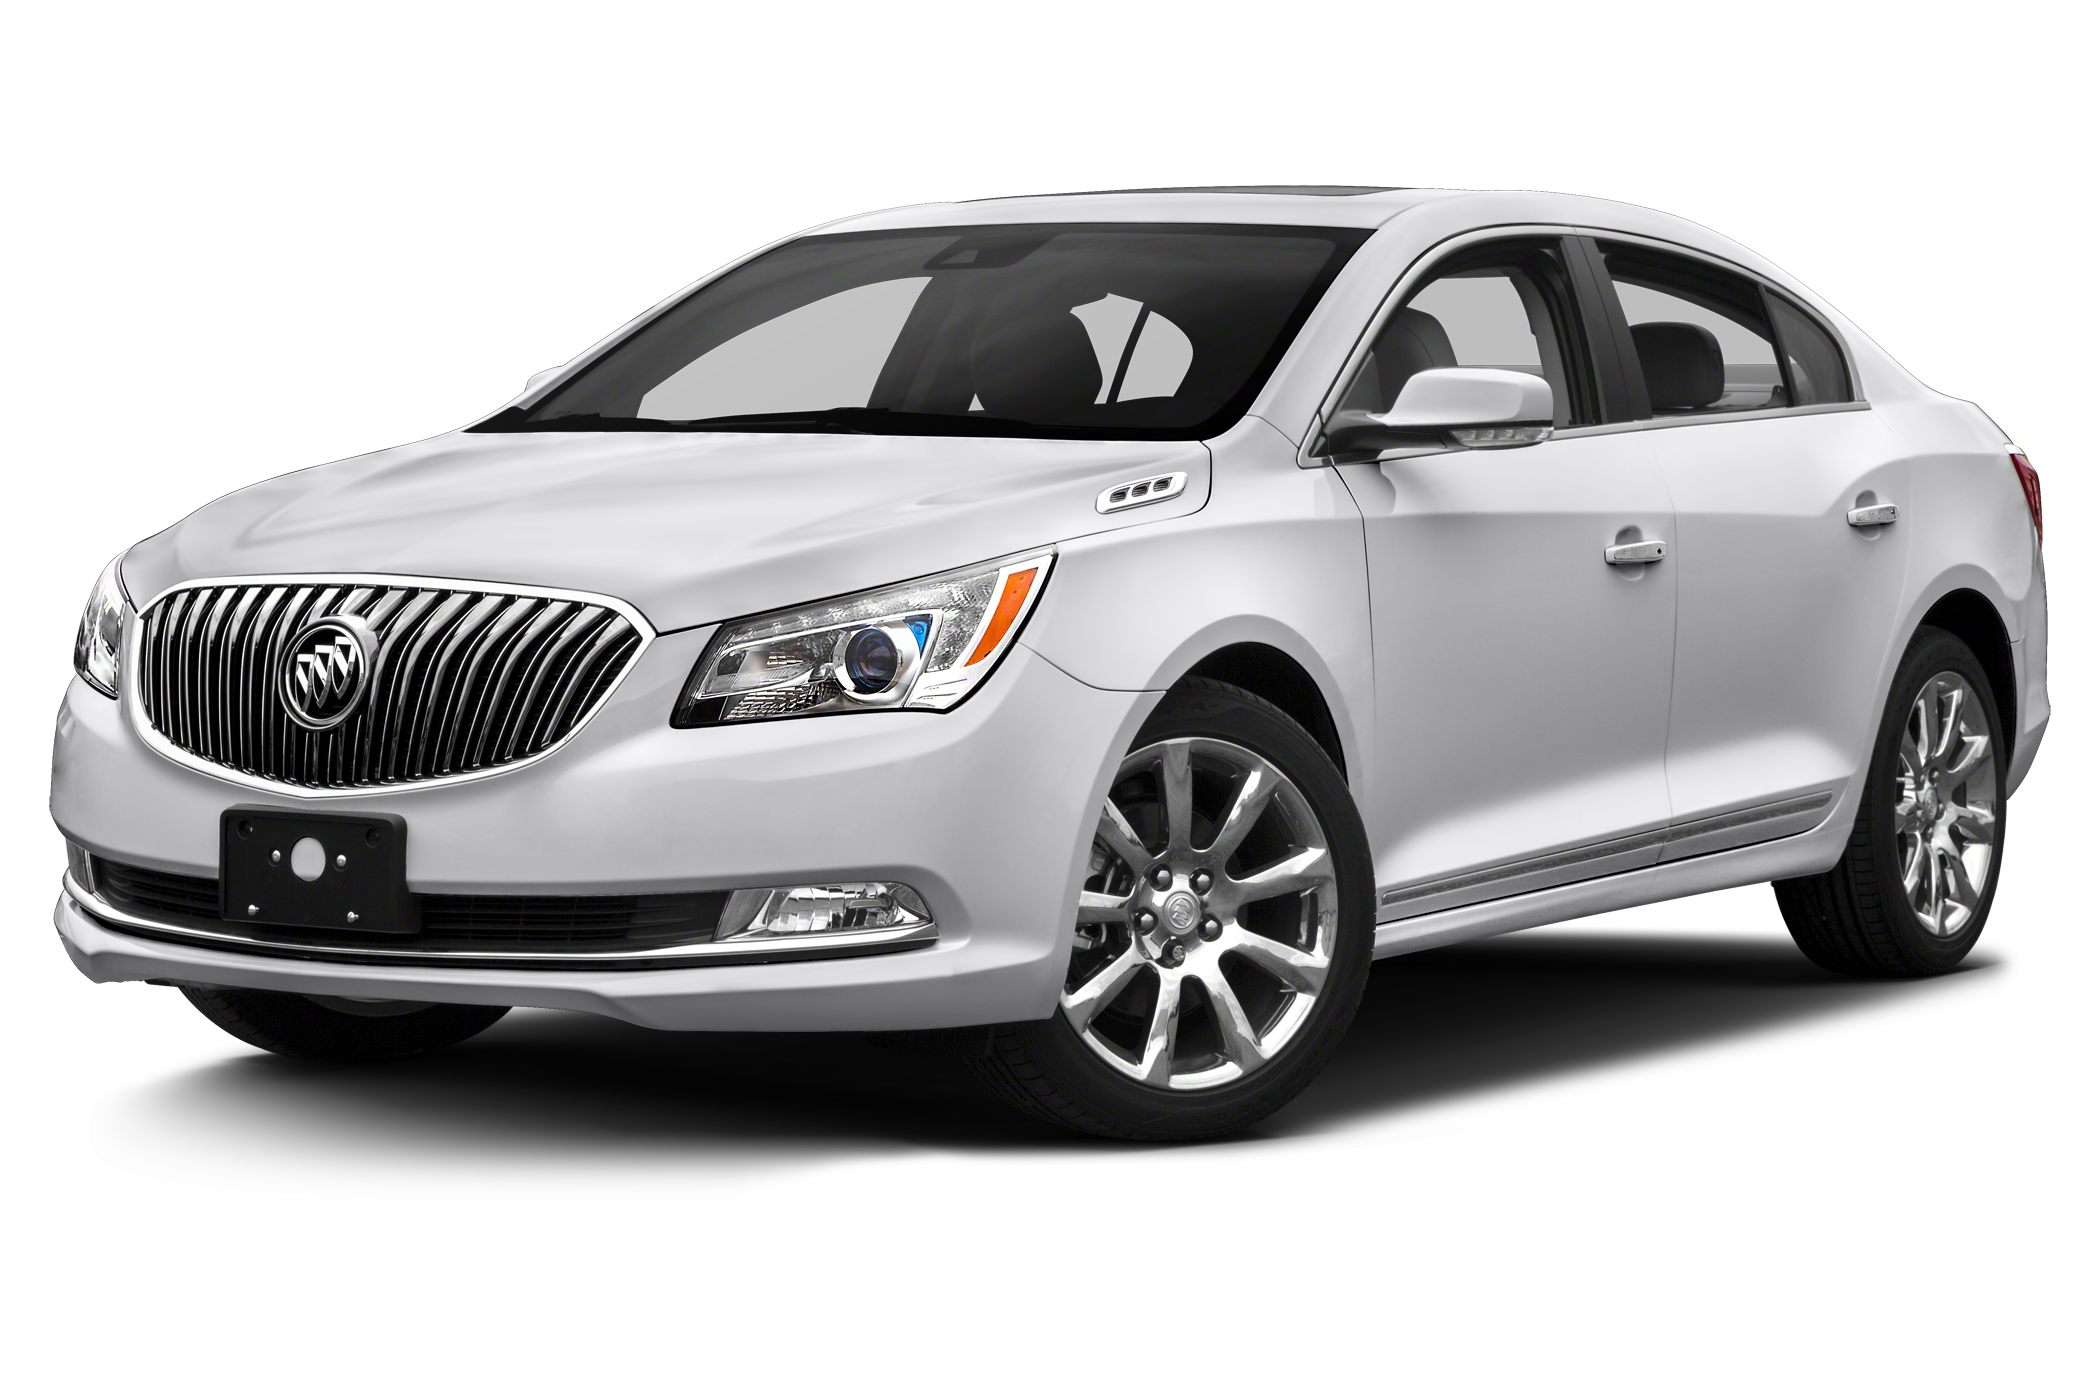 2015 Buick LaCrosse Leather Clean CARFAX Champagne Silver Metallic 2015 Buick LaCrosse Leather Gr